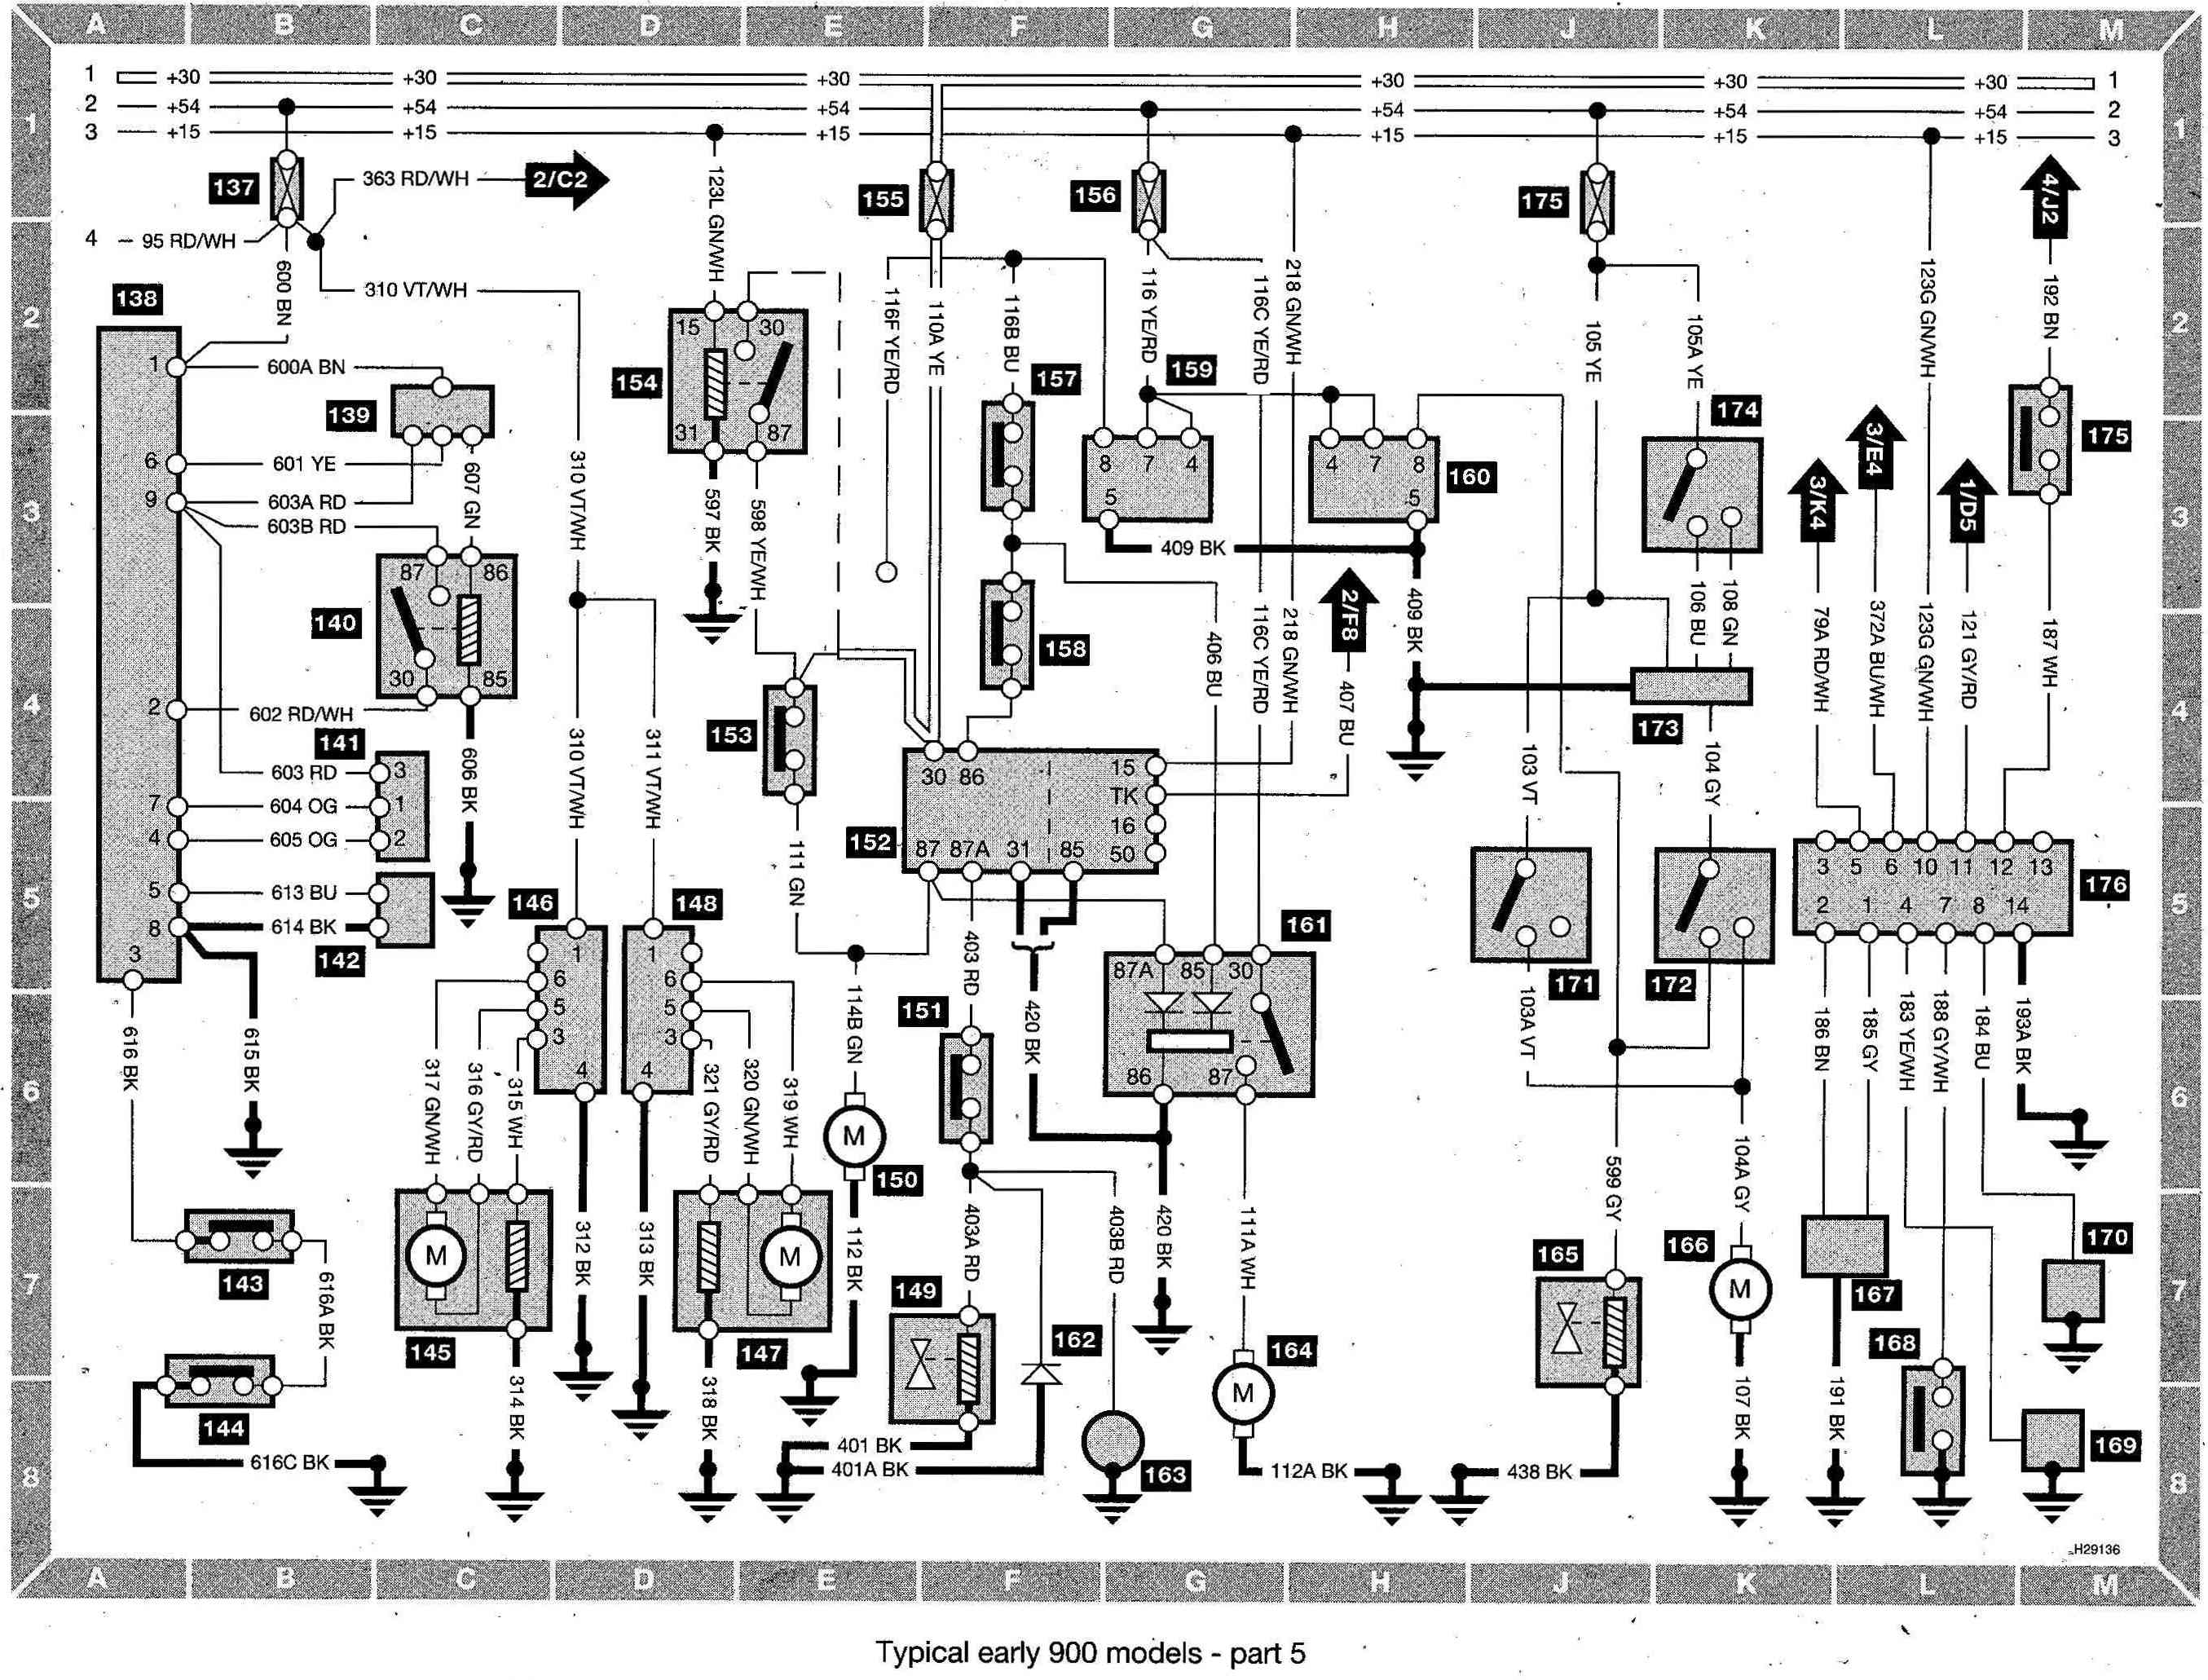 saab wiring diagrams wiring diagrams rh boltsoft net Saab Headlight Bulb Replacement Replace Headlight Saab 9 3